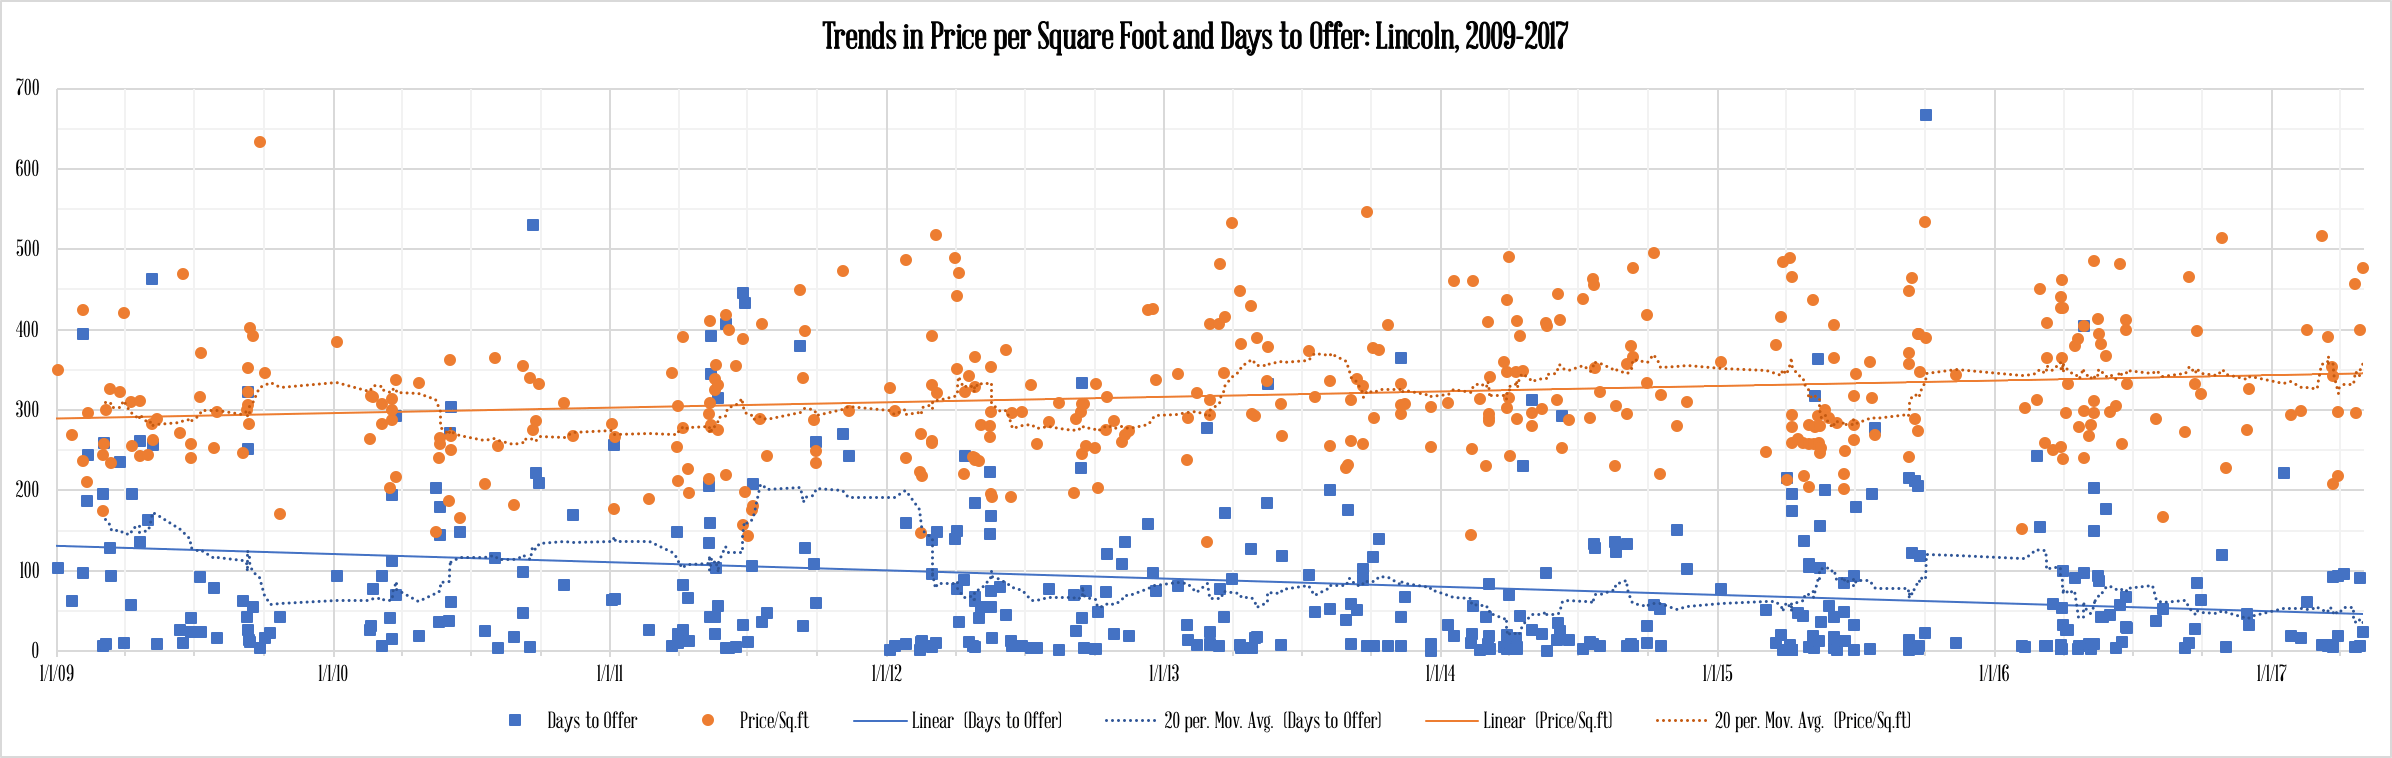 Trends in price per square foot and days to offer, Lincoln 2009-2017